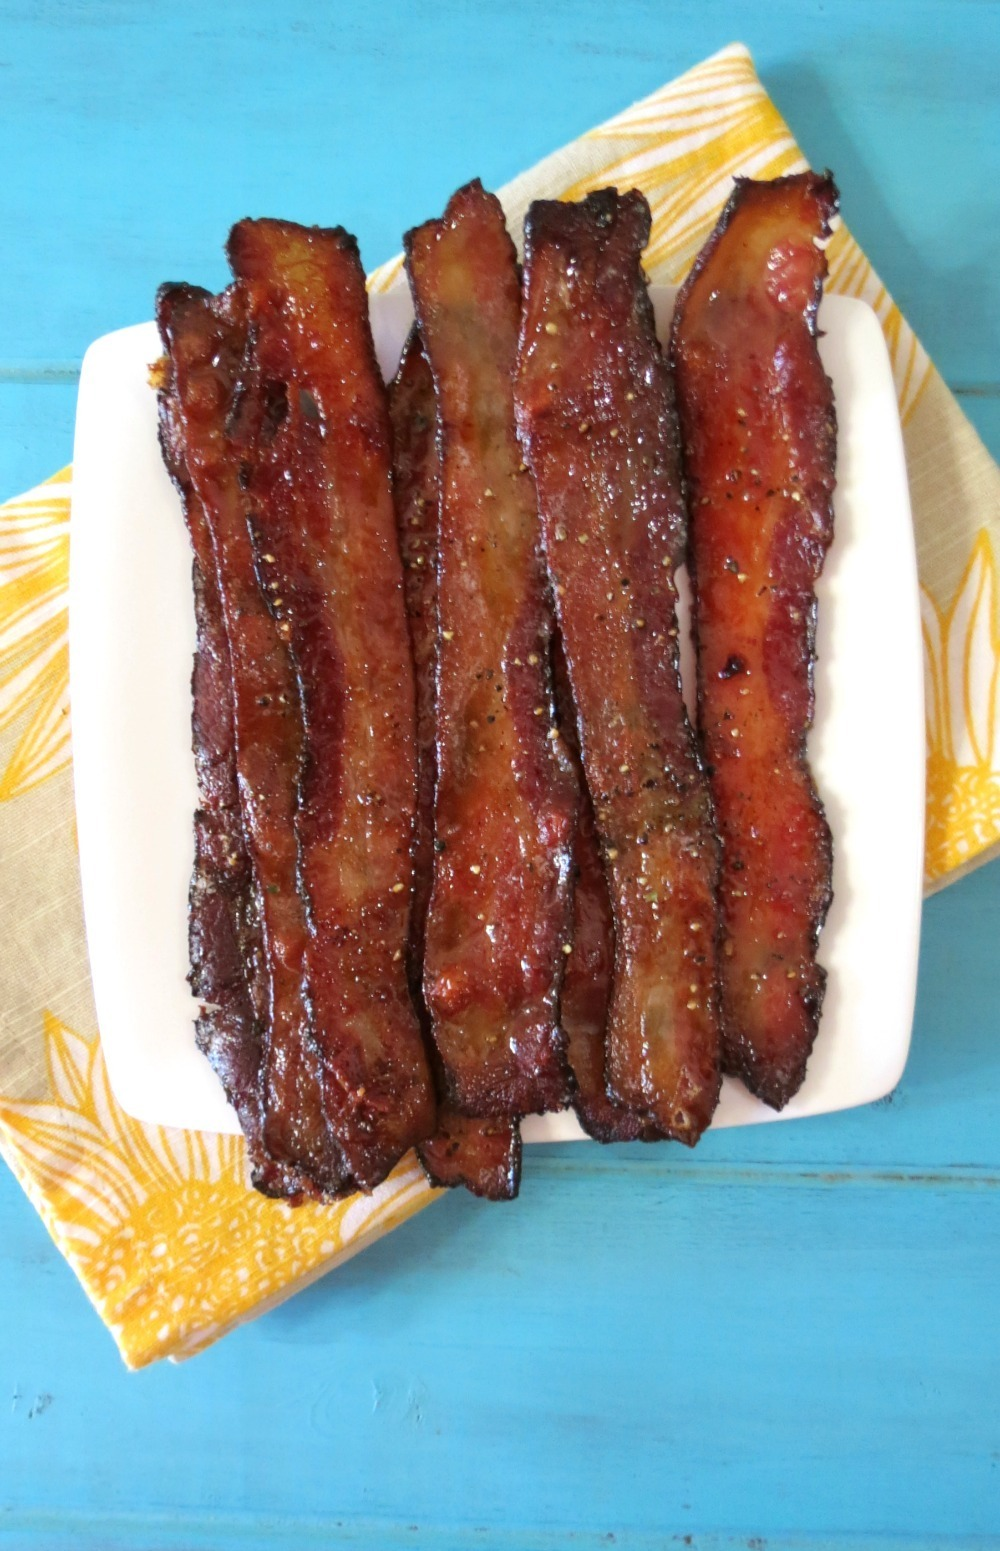 Baked Maple Glazed Bacon | Peanut Butter and Peppers